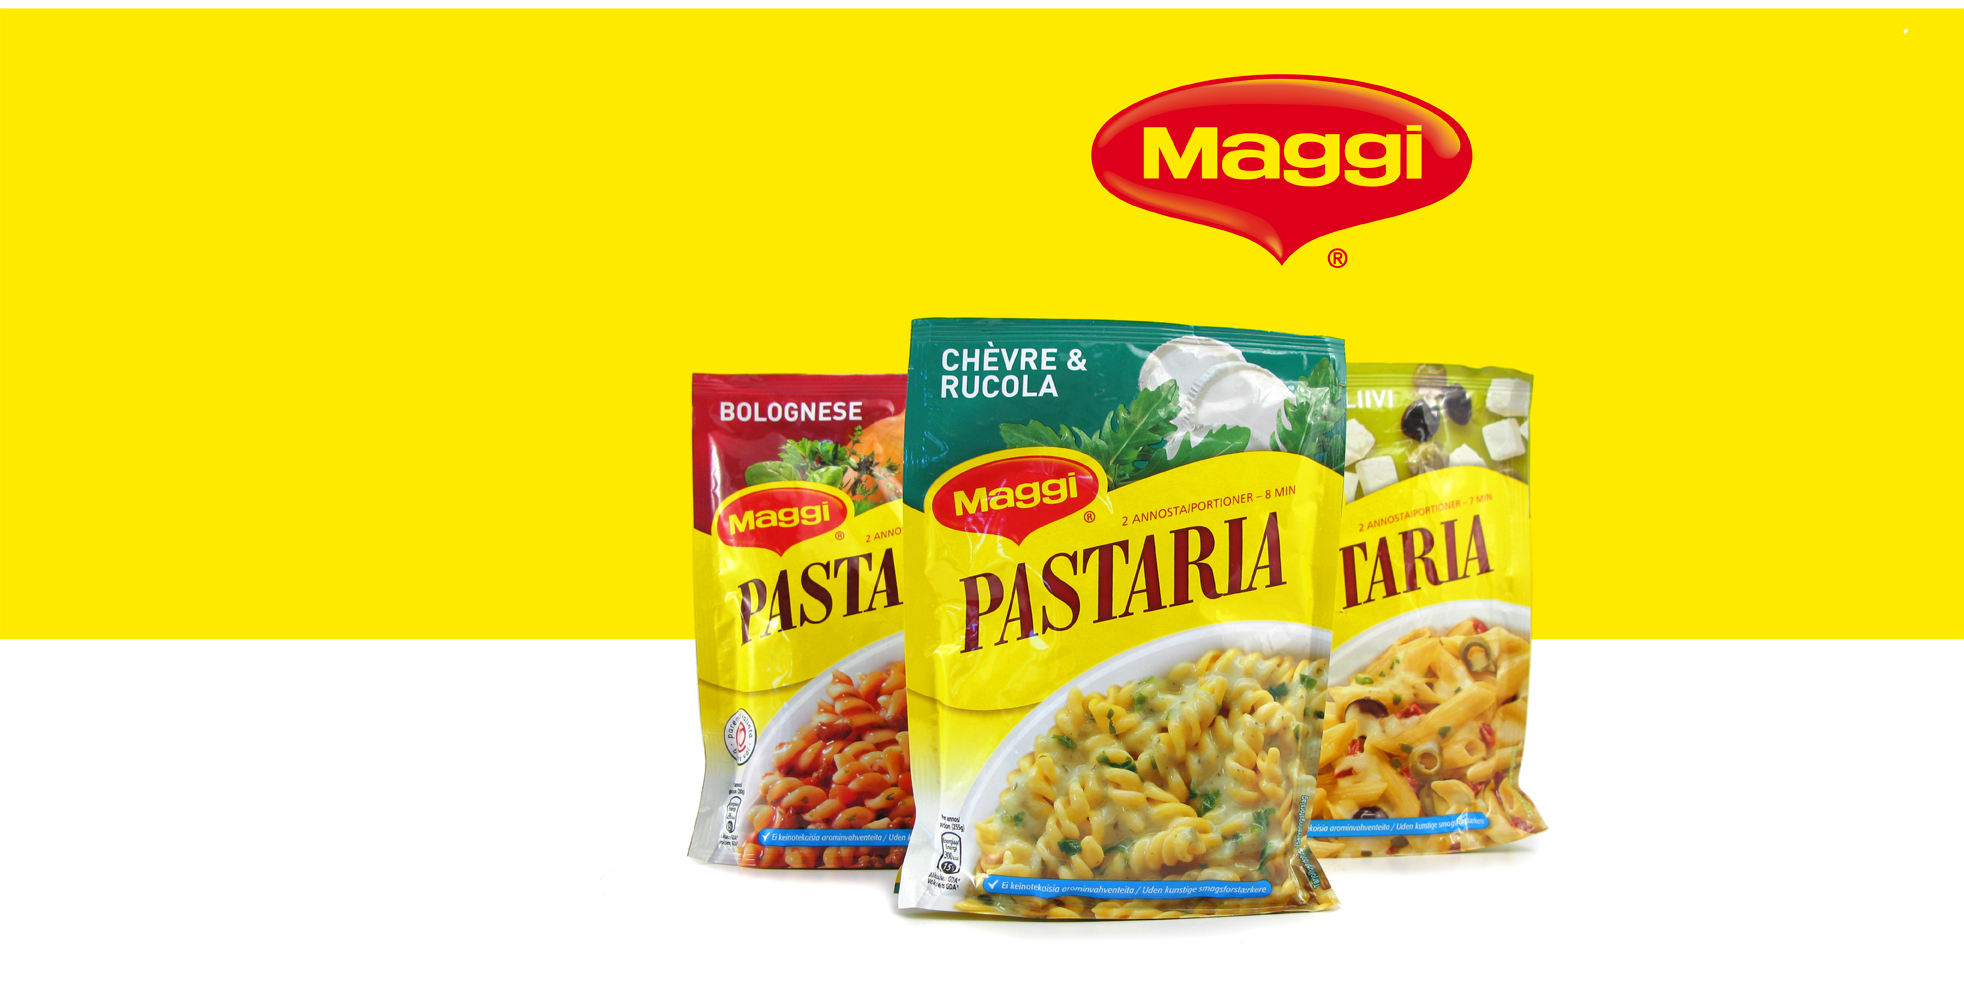 maggi packaging Sks bottle & packaging - supplier of plastic bottles, glass bottles, plastic jars, glass jars, metal containers and closures.